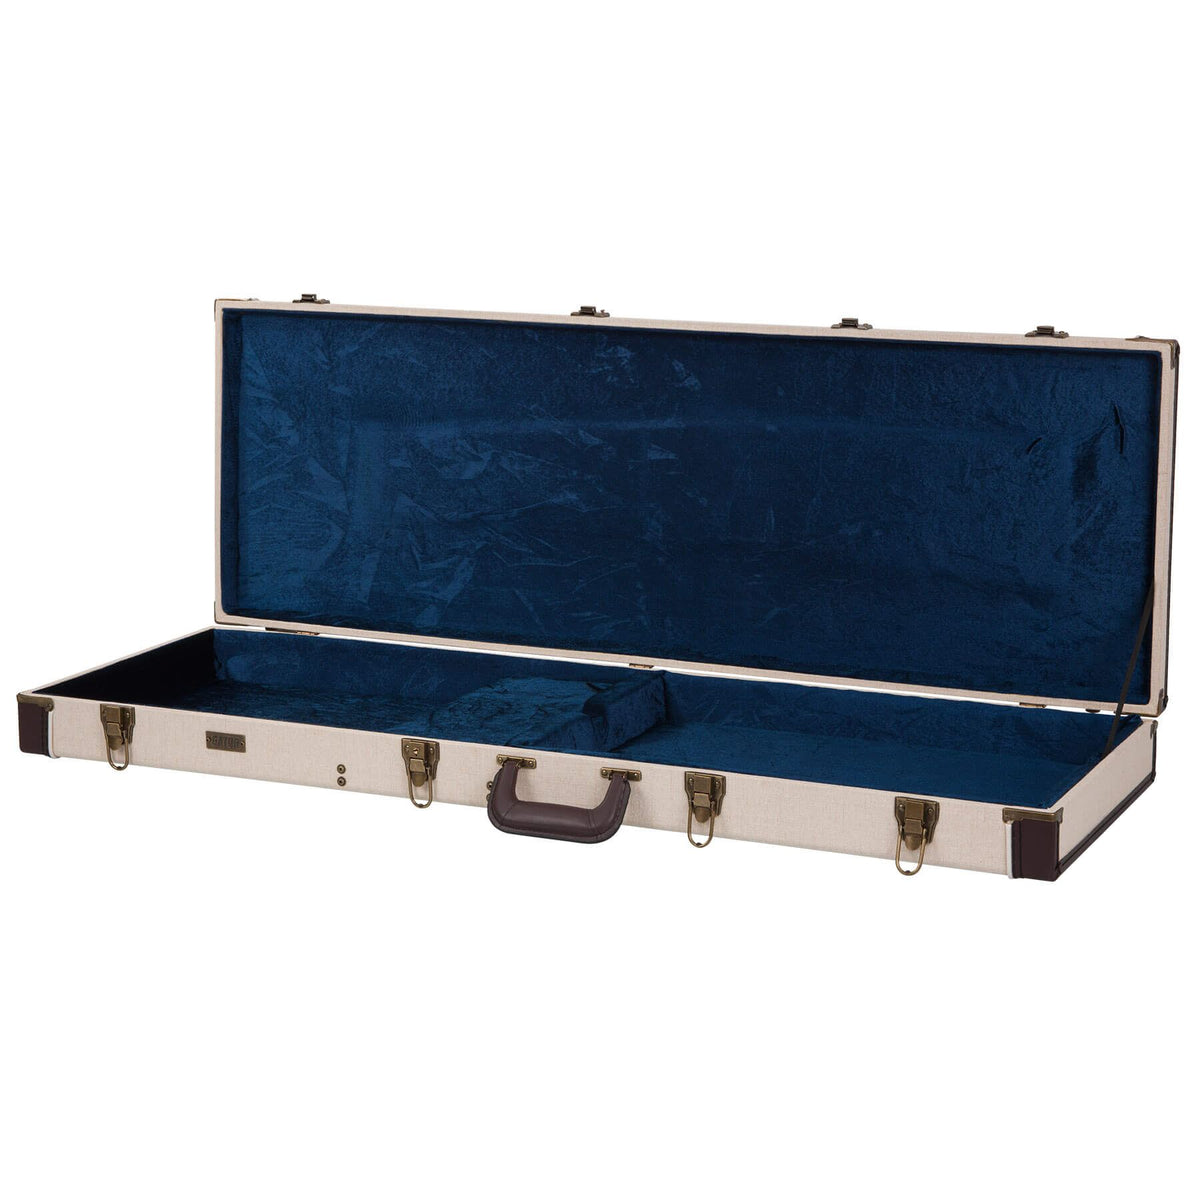 Gator Cases Journeyman Bass Guitar Case for Fender Victor Bailey Fretless Jazz Bass Electric Bass Guitars